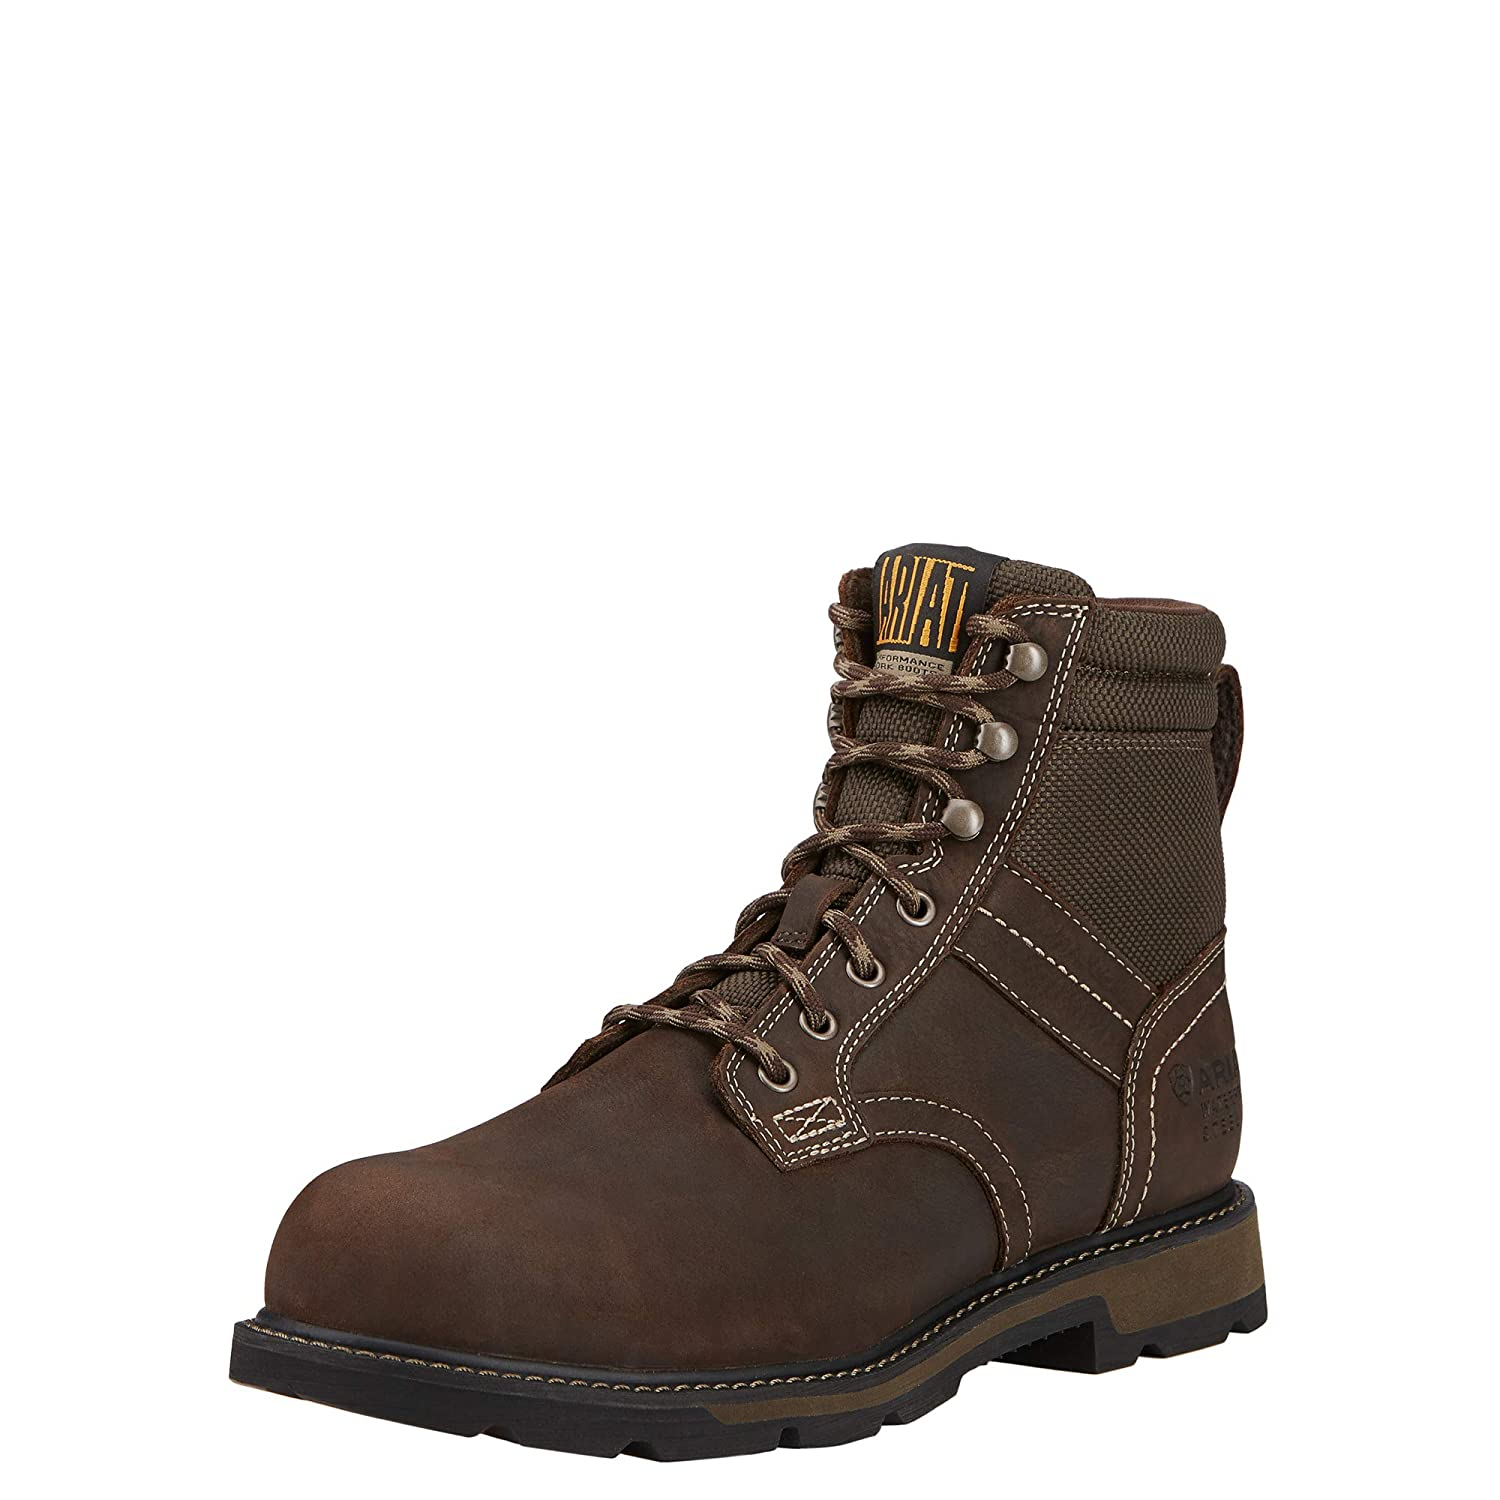 Ariat Hombres Botas De Seguridad, Dark Brown/Dark Olive Cordura ...